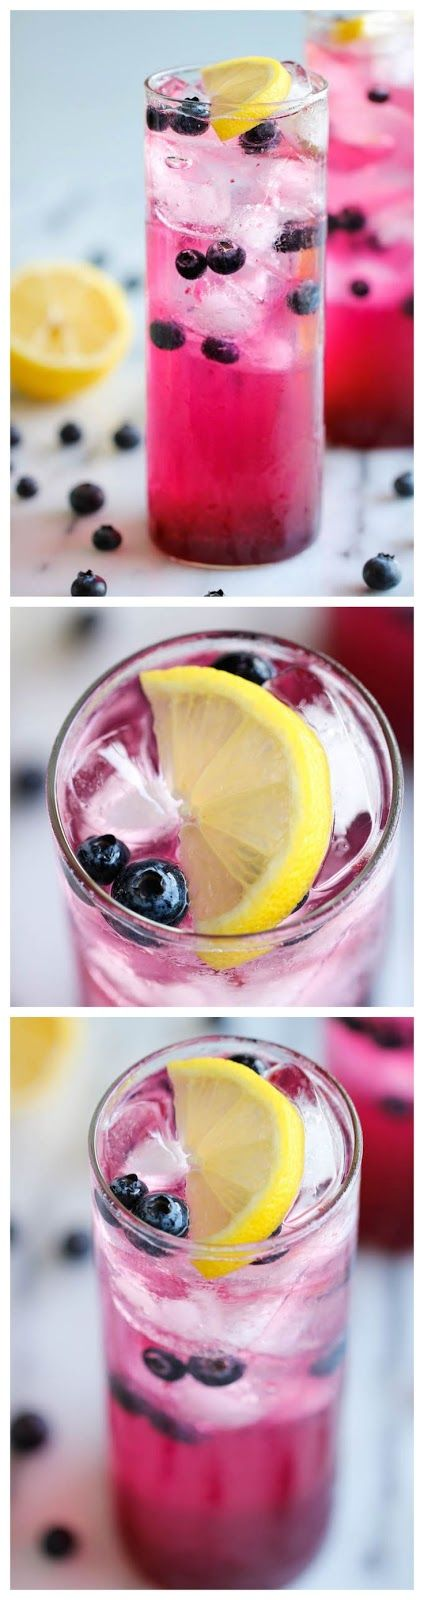 Blueberry Lemonade #colddrinks